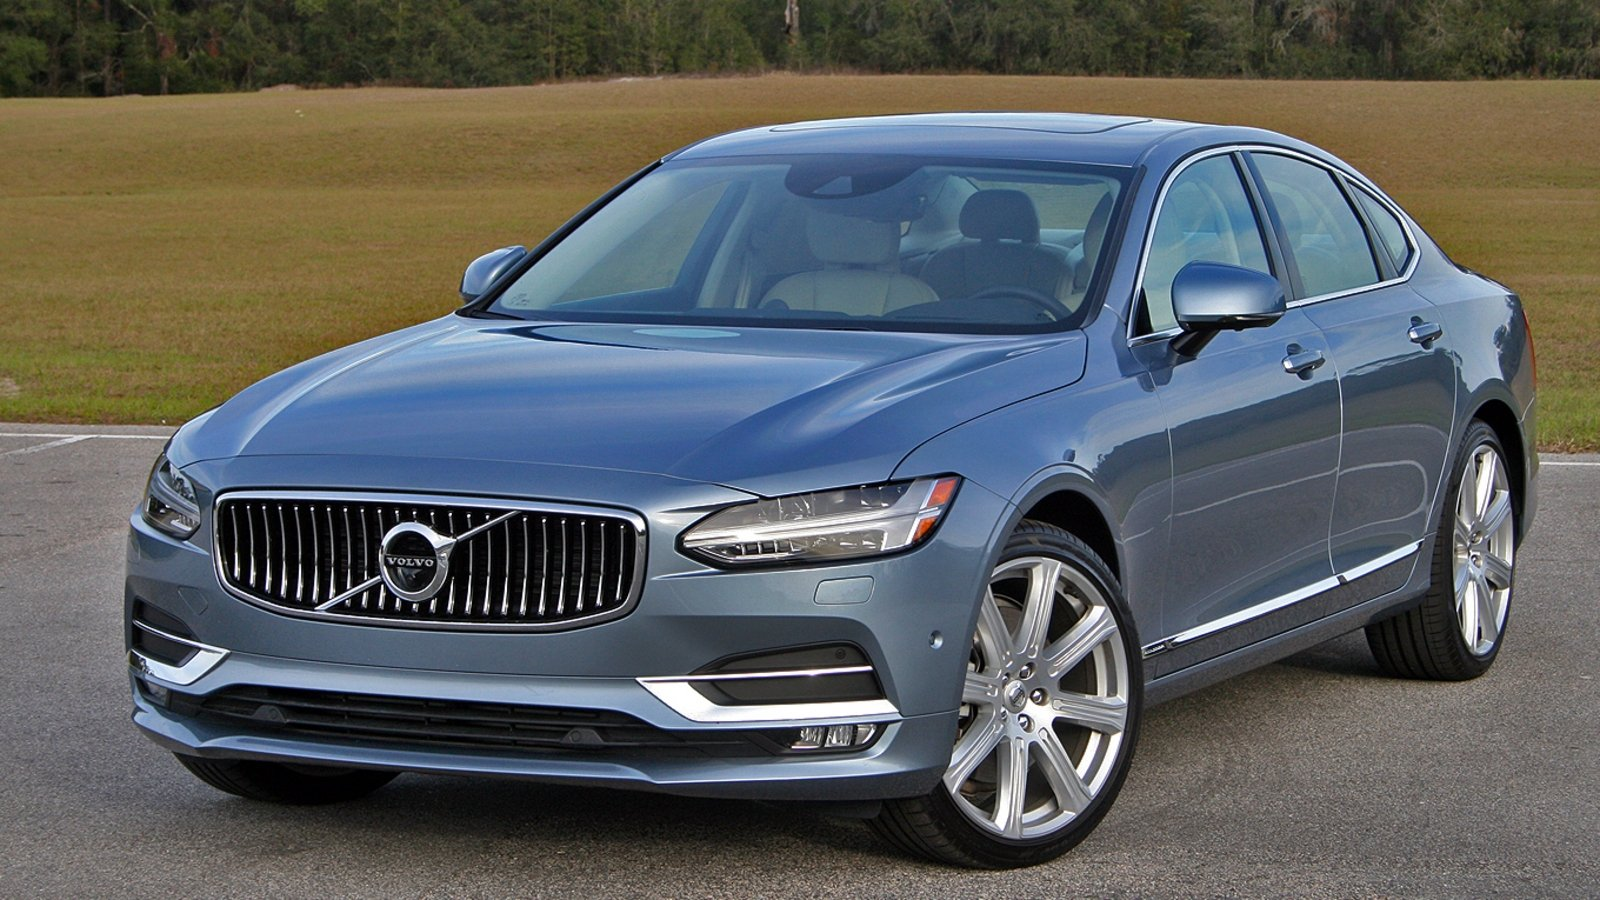 s90 volvo inscription cars topspeed driven